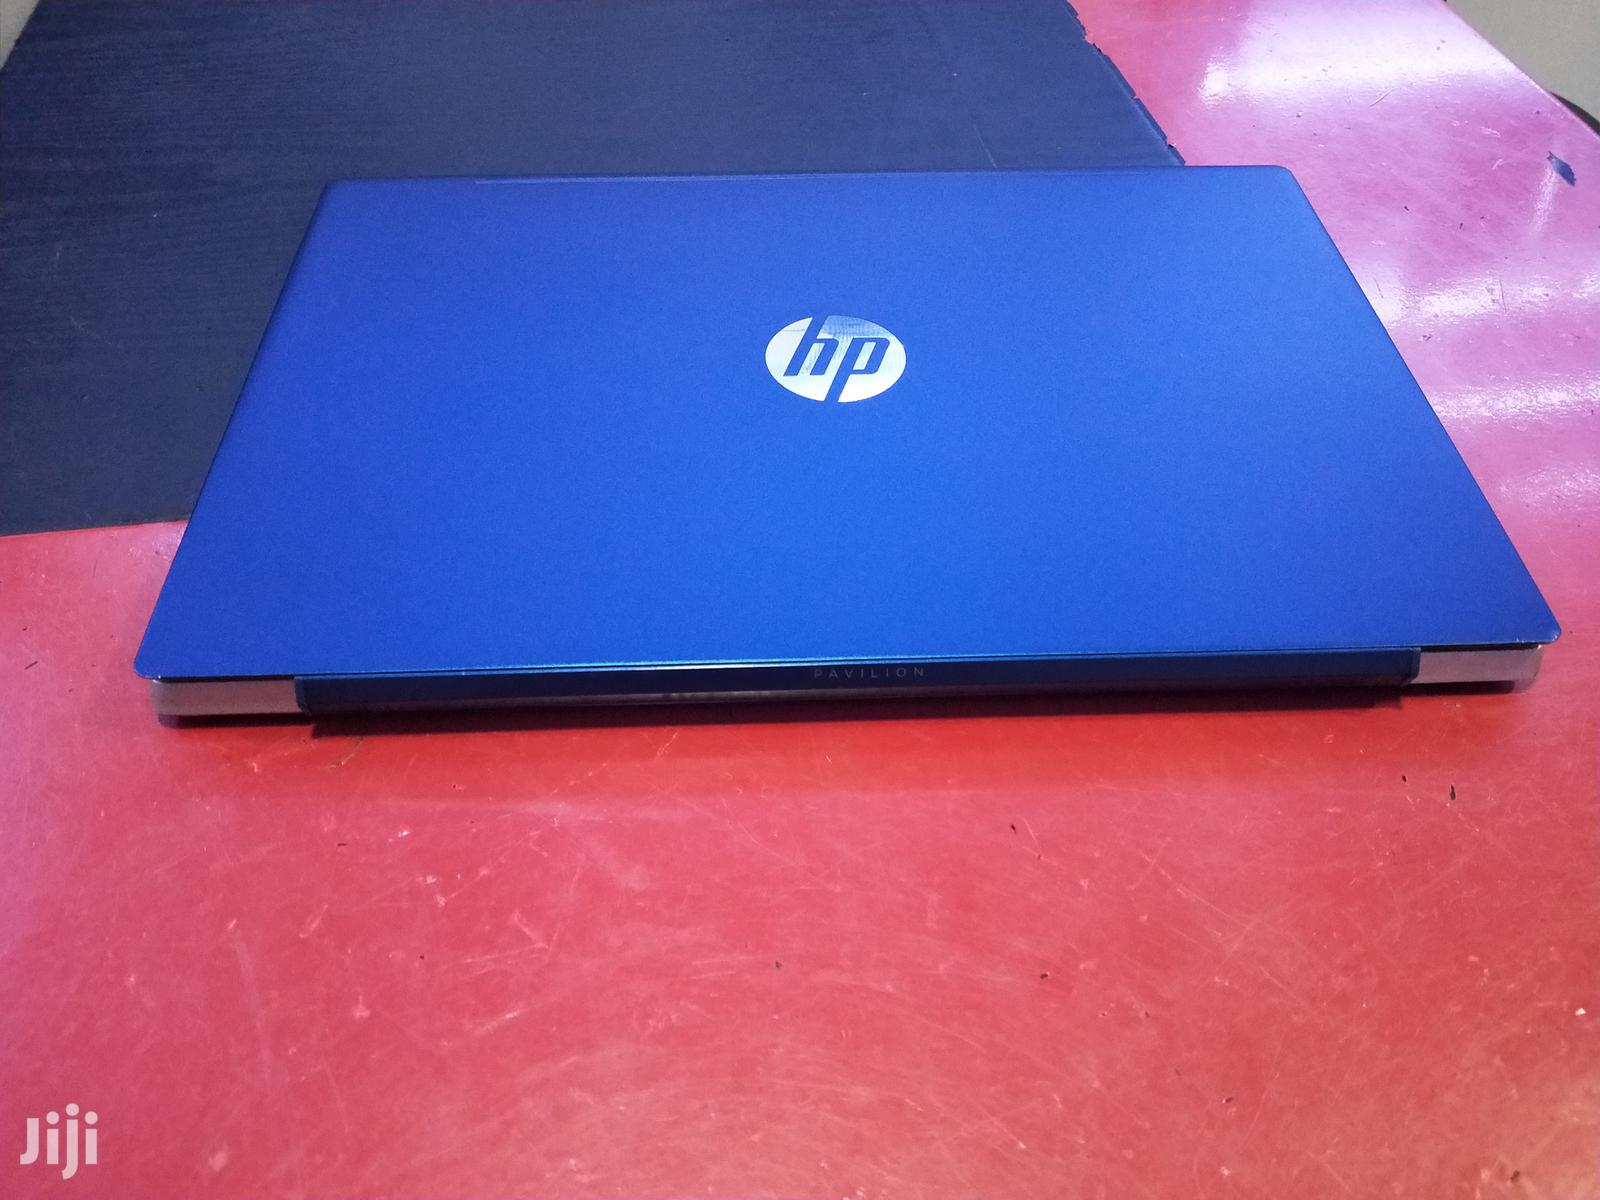 Archive: Laptop HP Pavilion 15 8GB Intel Core i5 SSHD (Hybrid) 1T